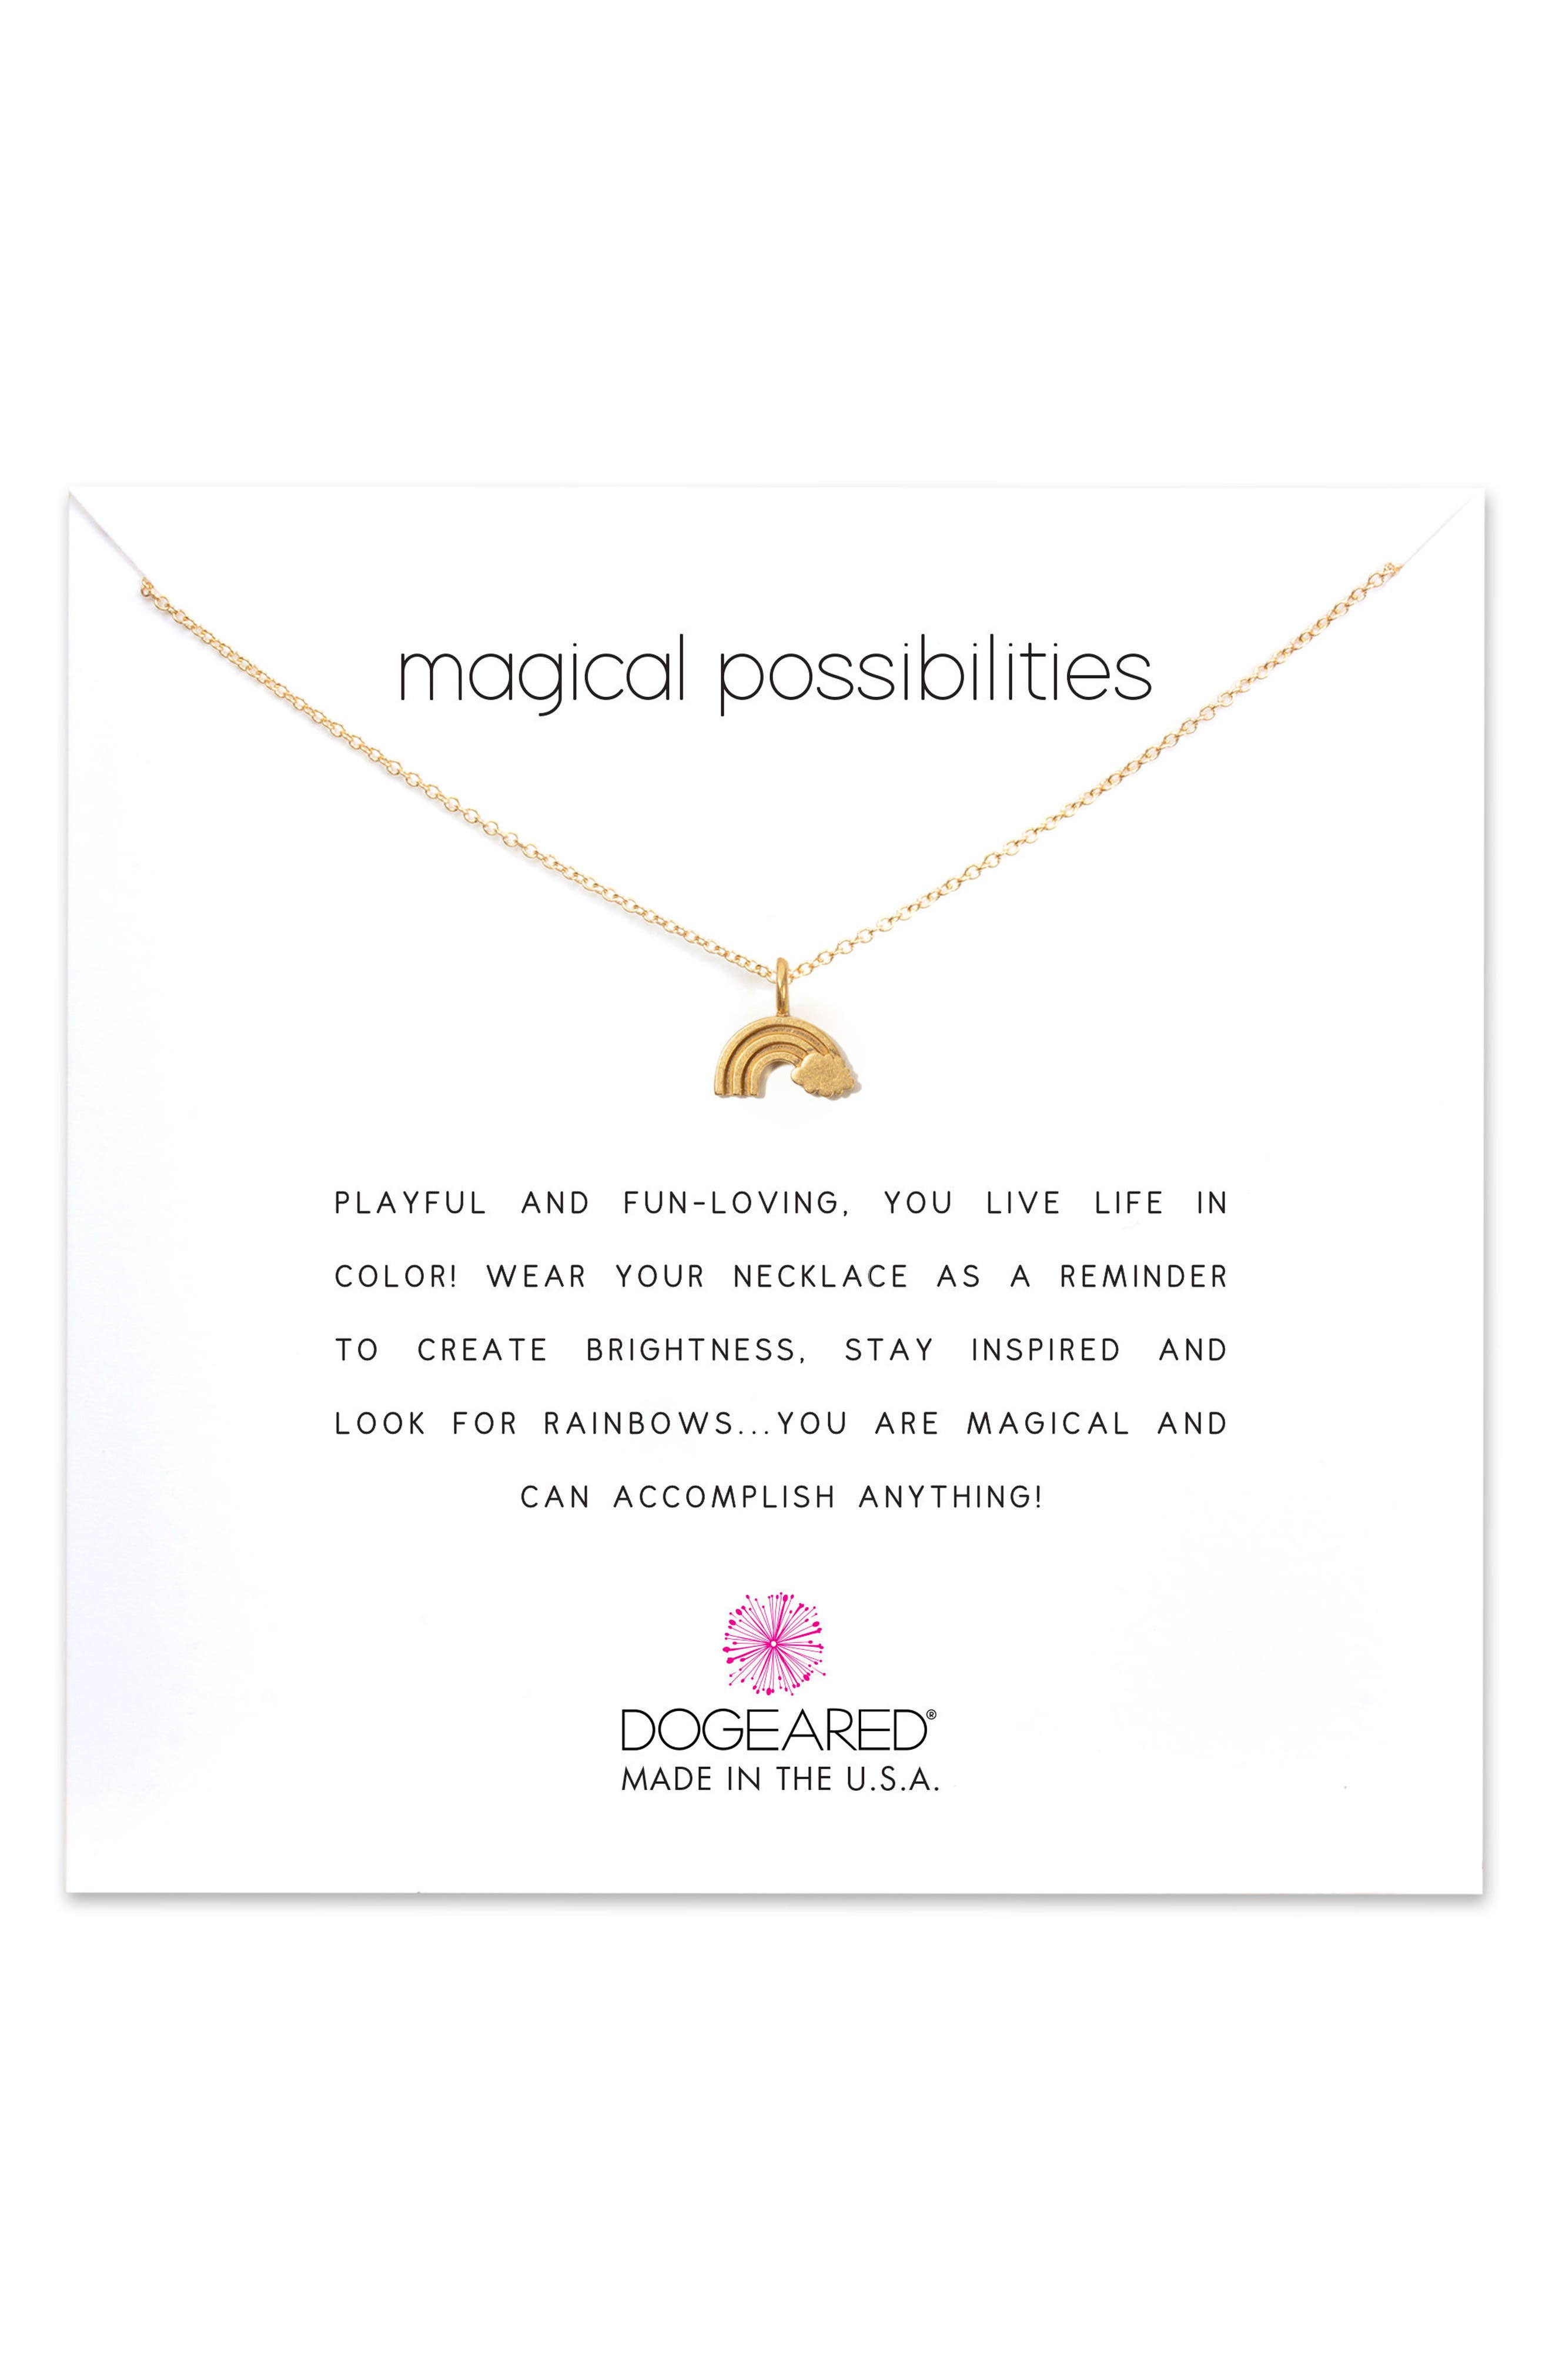 DOGEARED Reminder - Magical Possibilities Pendant Necklace